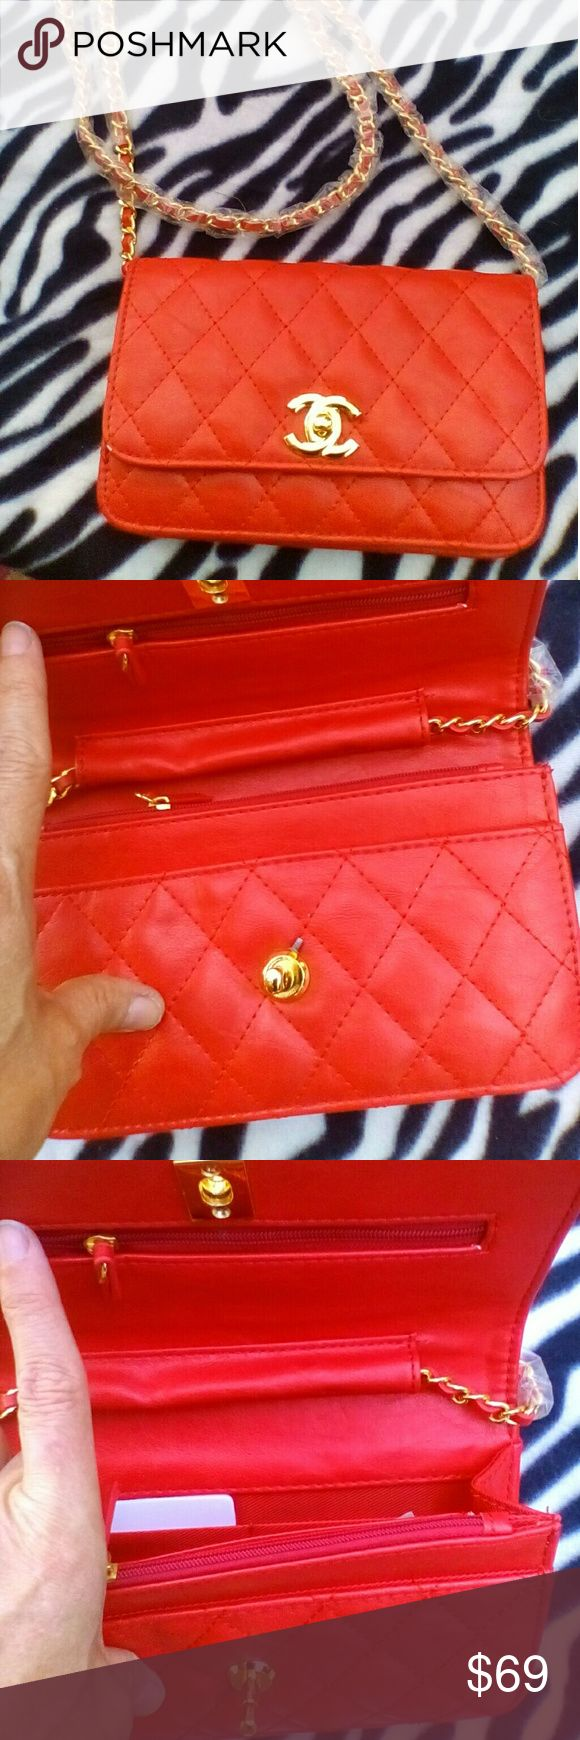 NWOT Red C.hanel Mini Quilted Shoulder Bag NWOT CUTE Chanel Mini Quilted Shoulder Bag. Chain Shoulder Strap still has plastic on it. Beautifully designer inspired. Price reflects auth.  Shop my closet for more deals. Bundle and save. Happy Poshing! Bags Shoulder Bags